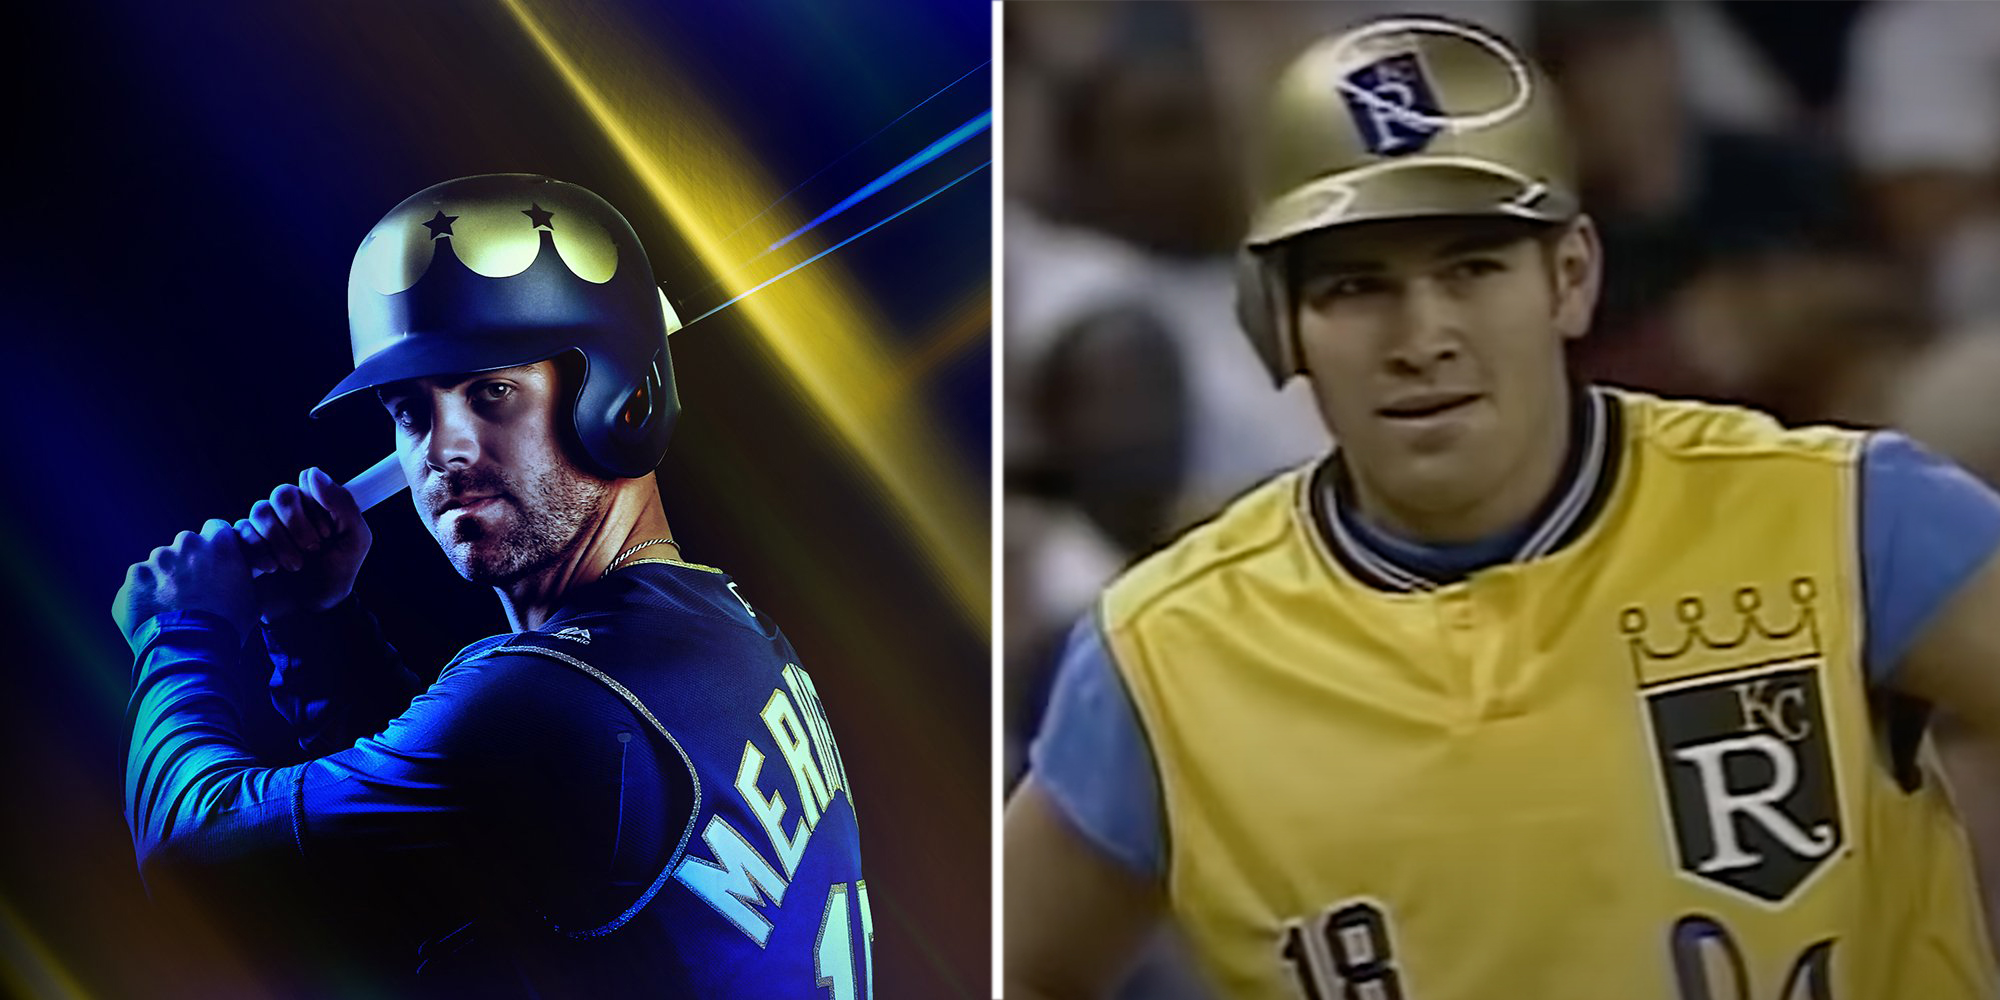 The Kansas City Royals had so much fun on Turn Ahead the Clock Night, they decided to bring the promotion back for its 20th anniversary in 2018. Pictured here are (L) Whit Merrifield in 2018 and (R) Johnny Damon in 1998. (KANSAS CITY ROYALS)